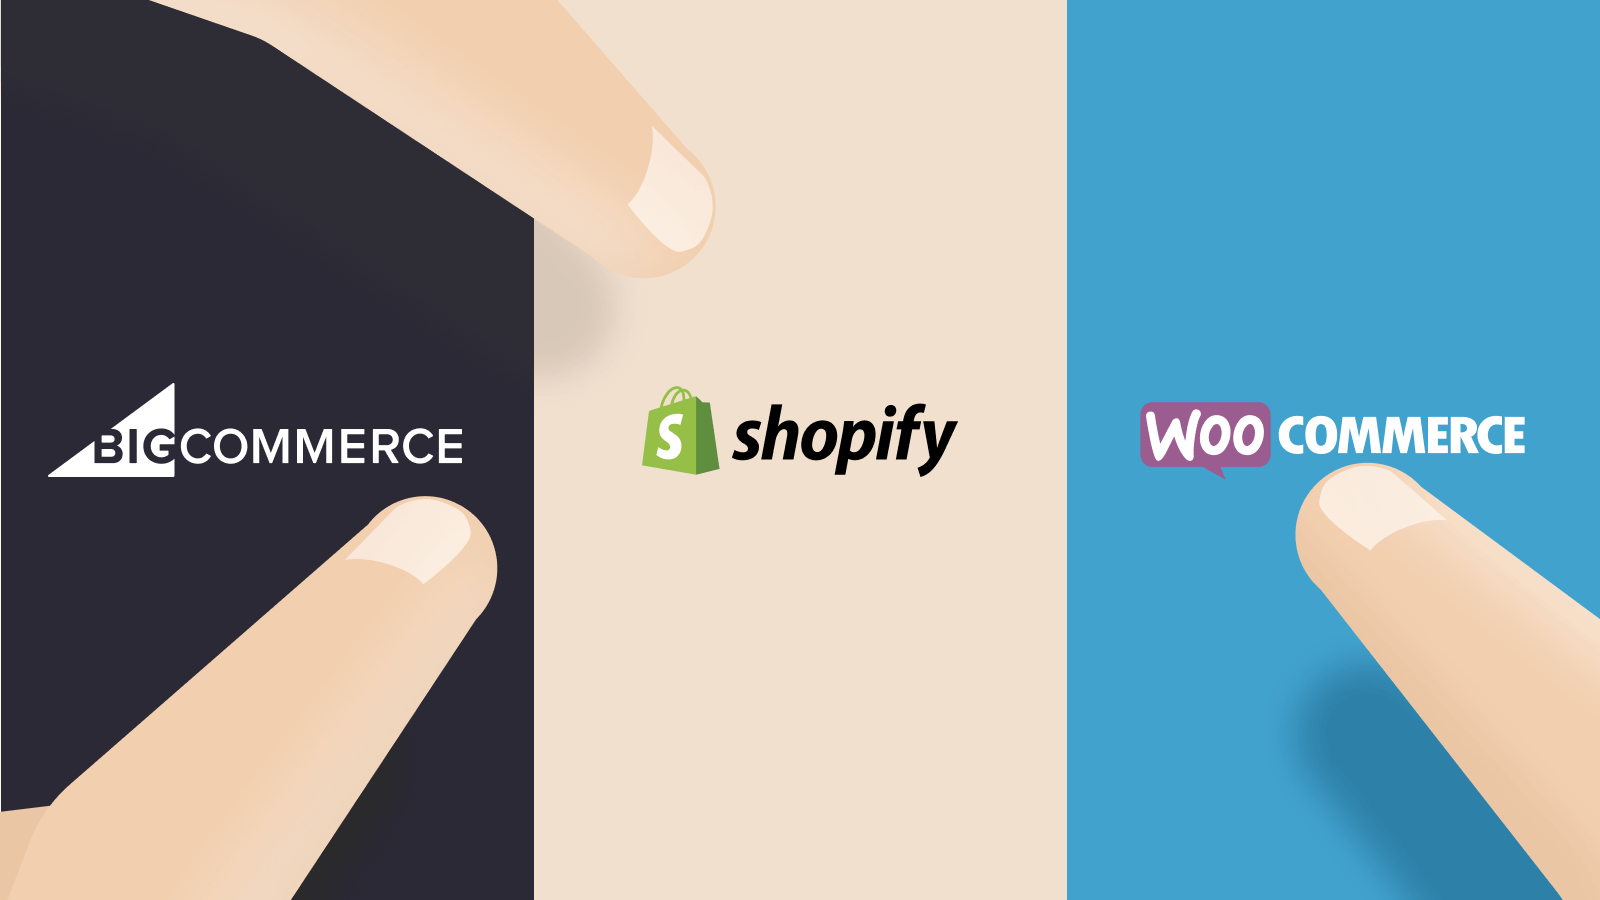 Ecommerce software options - illustration of people choosing between Big Commerce, Woo Commerce and Shopify